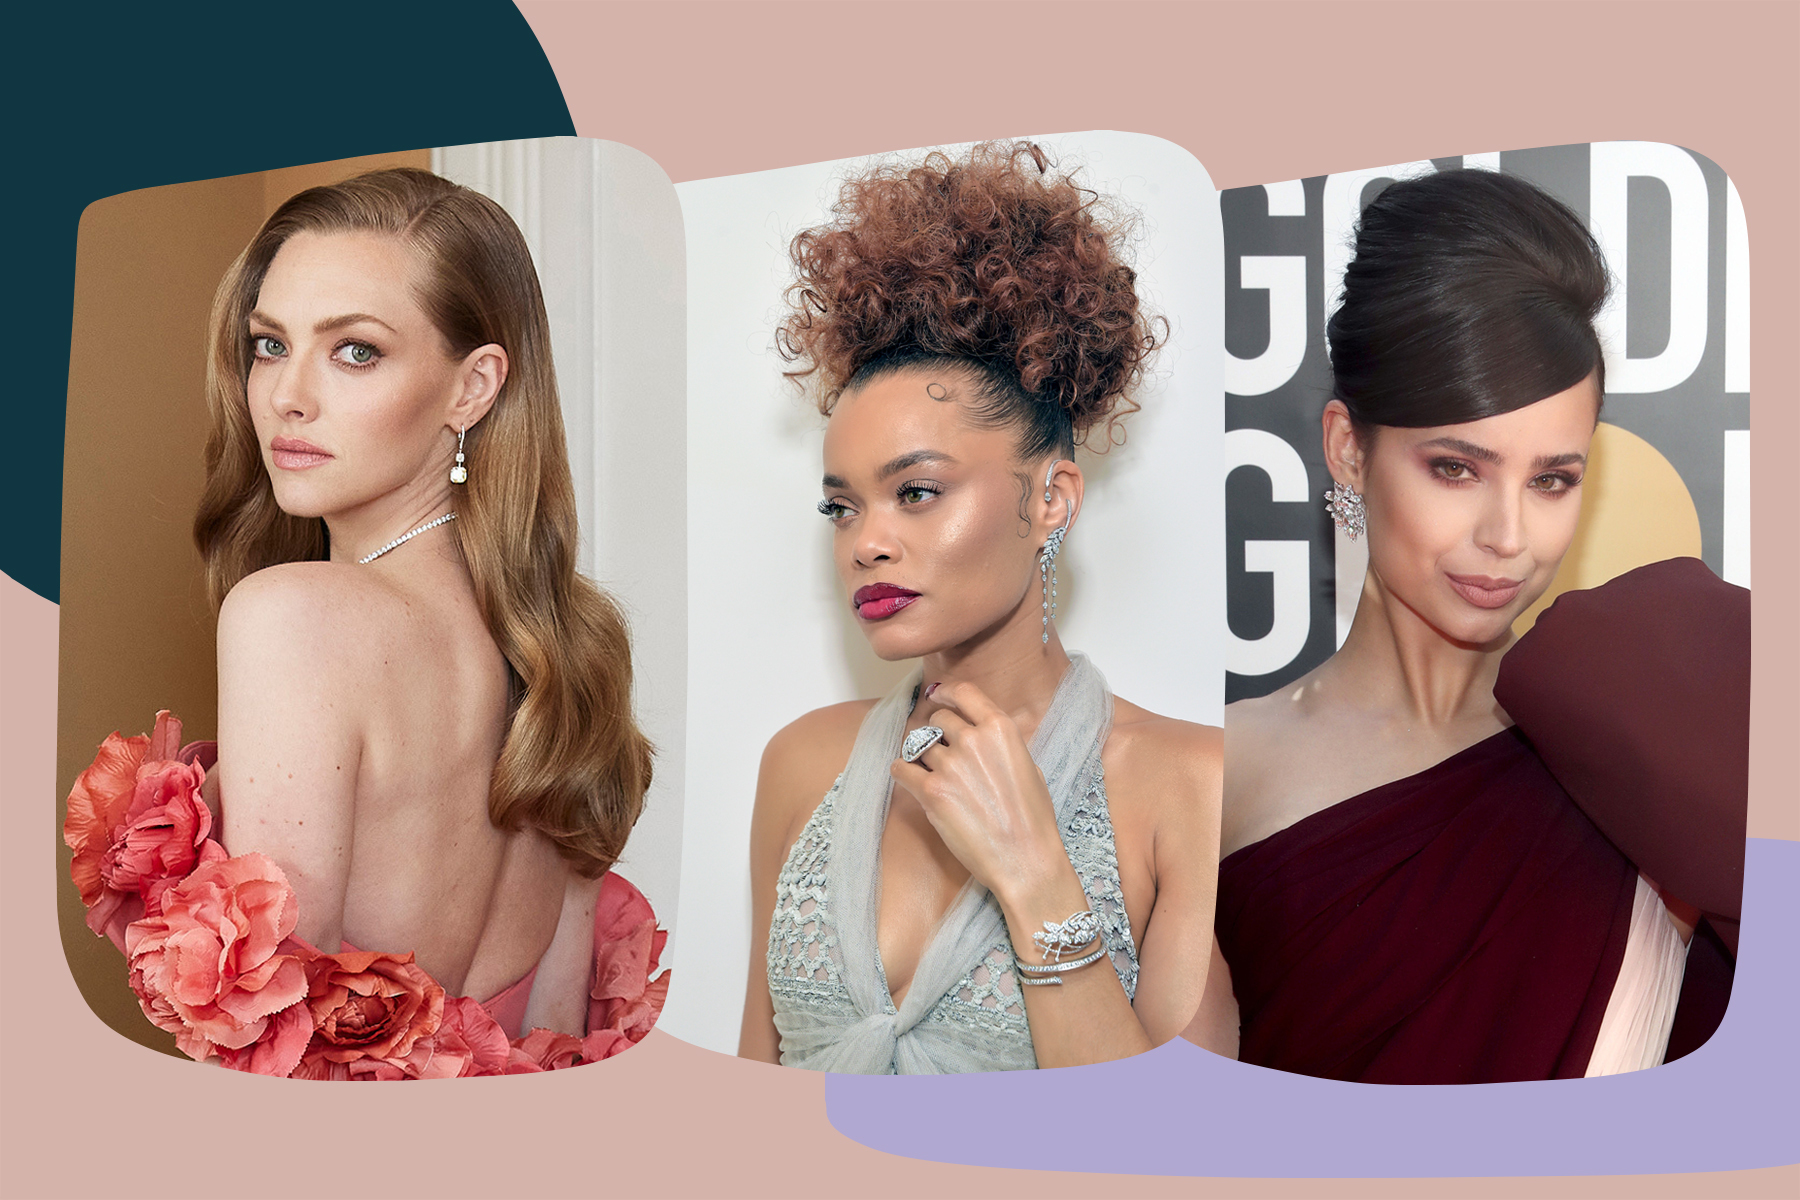 golden globes 2021 beauty best amanda seyfried sofia carson andra day